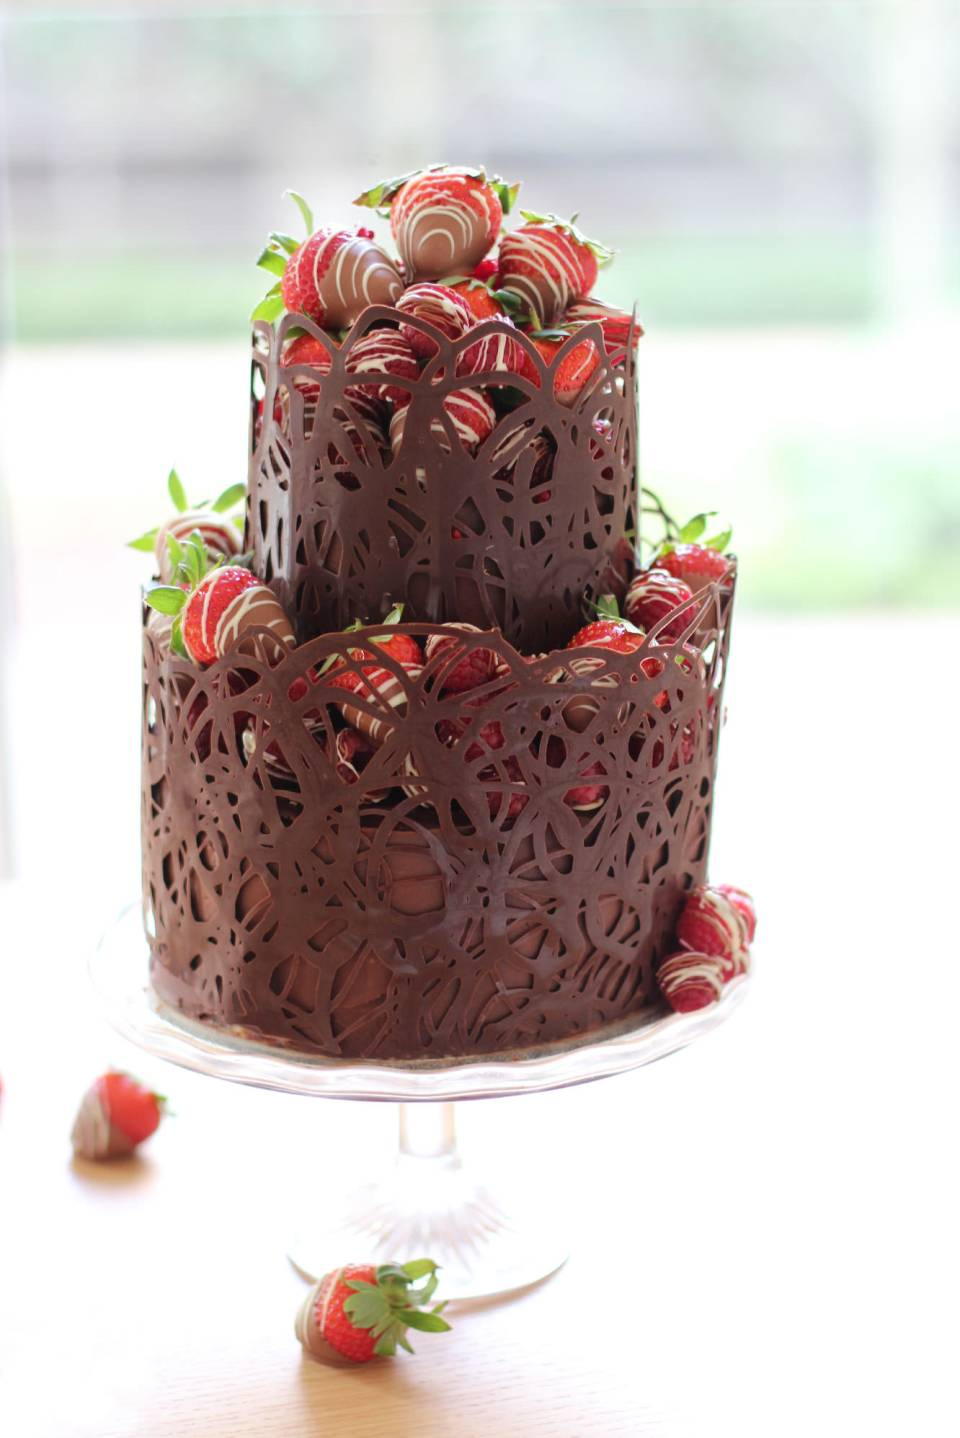 chocolate-salted-caramel-two-tier-occasion-cake-recipe-17